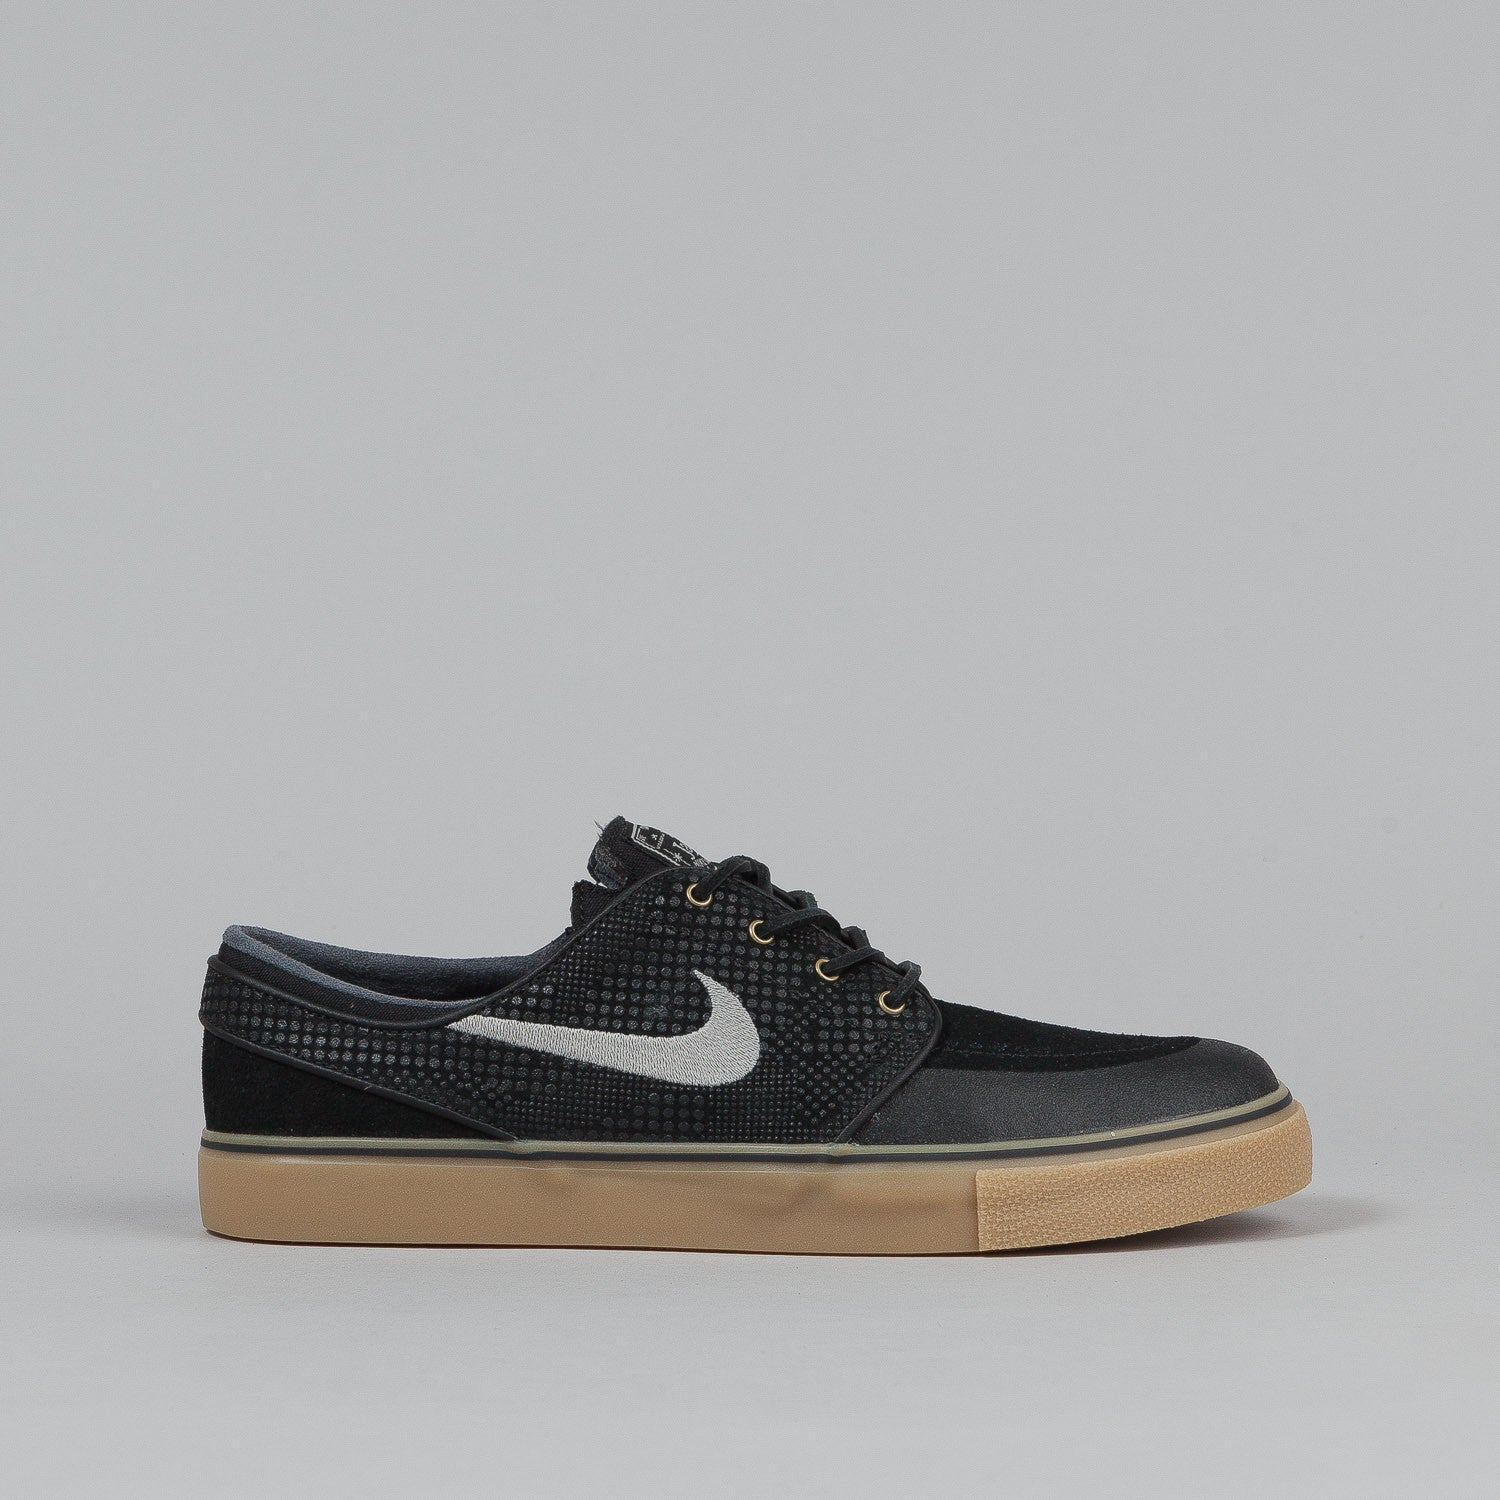 Nike SB Stefan Janoski PR SE Shoes - Black / Medium Grey / Gum Light Brown / Anthracite